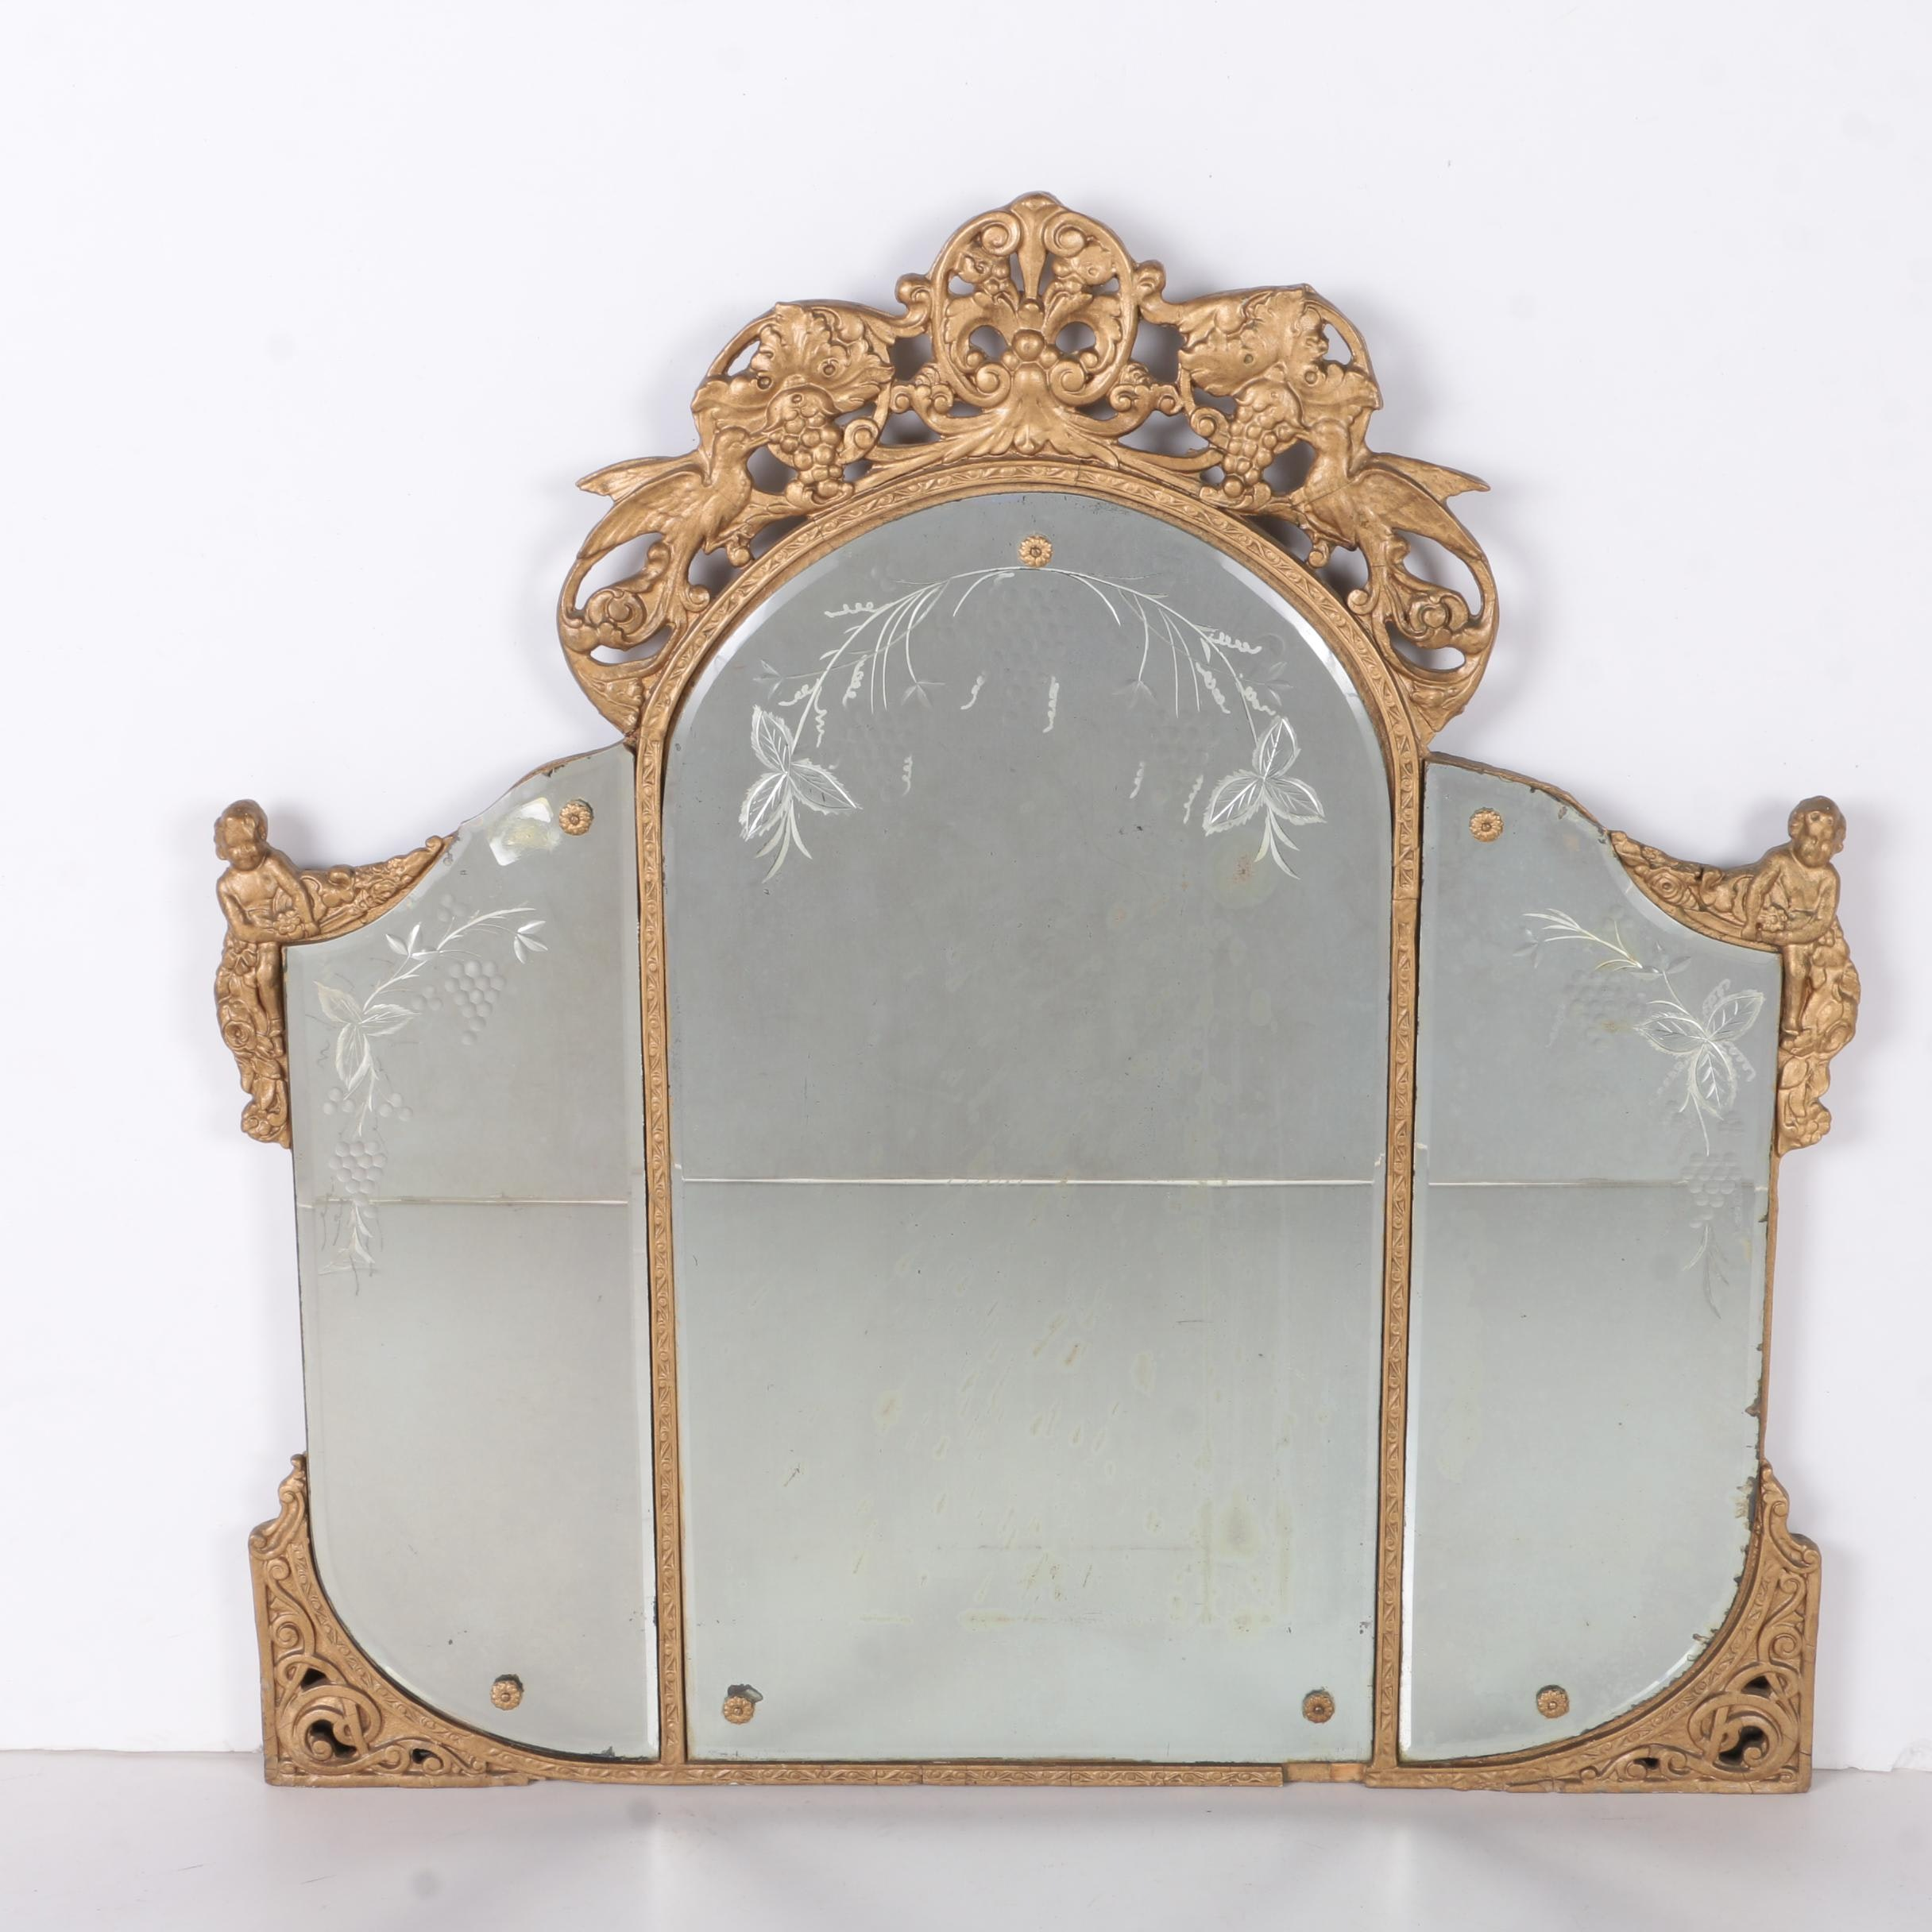 Vintage Etched Vanity Mirror with Rocaille Pediment